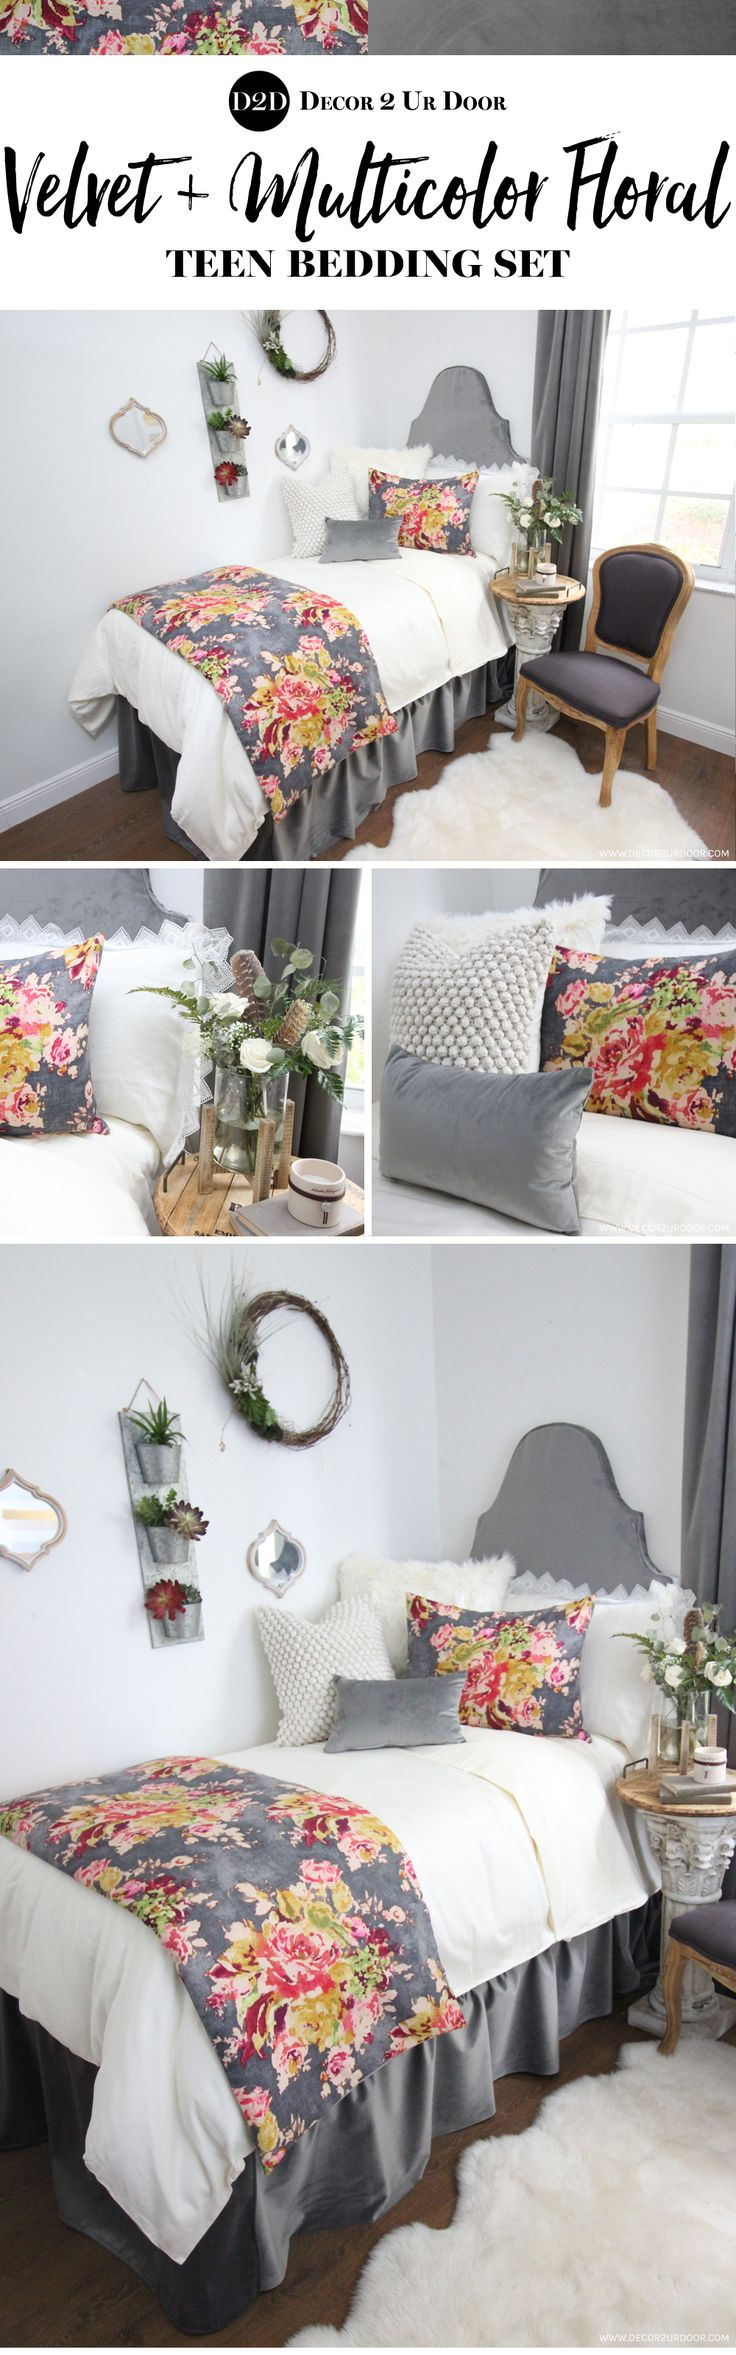 414 best Teen Room Decorating images on Pinterest | Twin xl ...